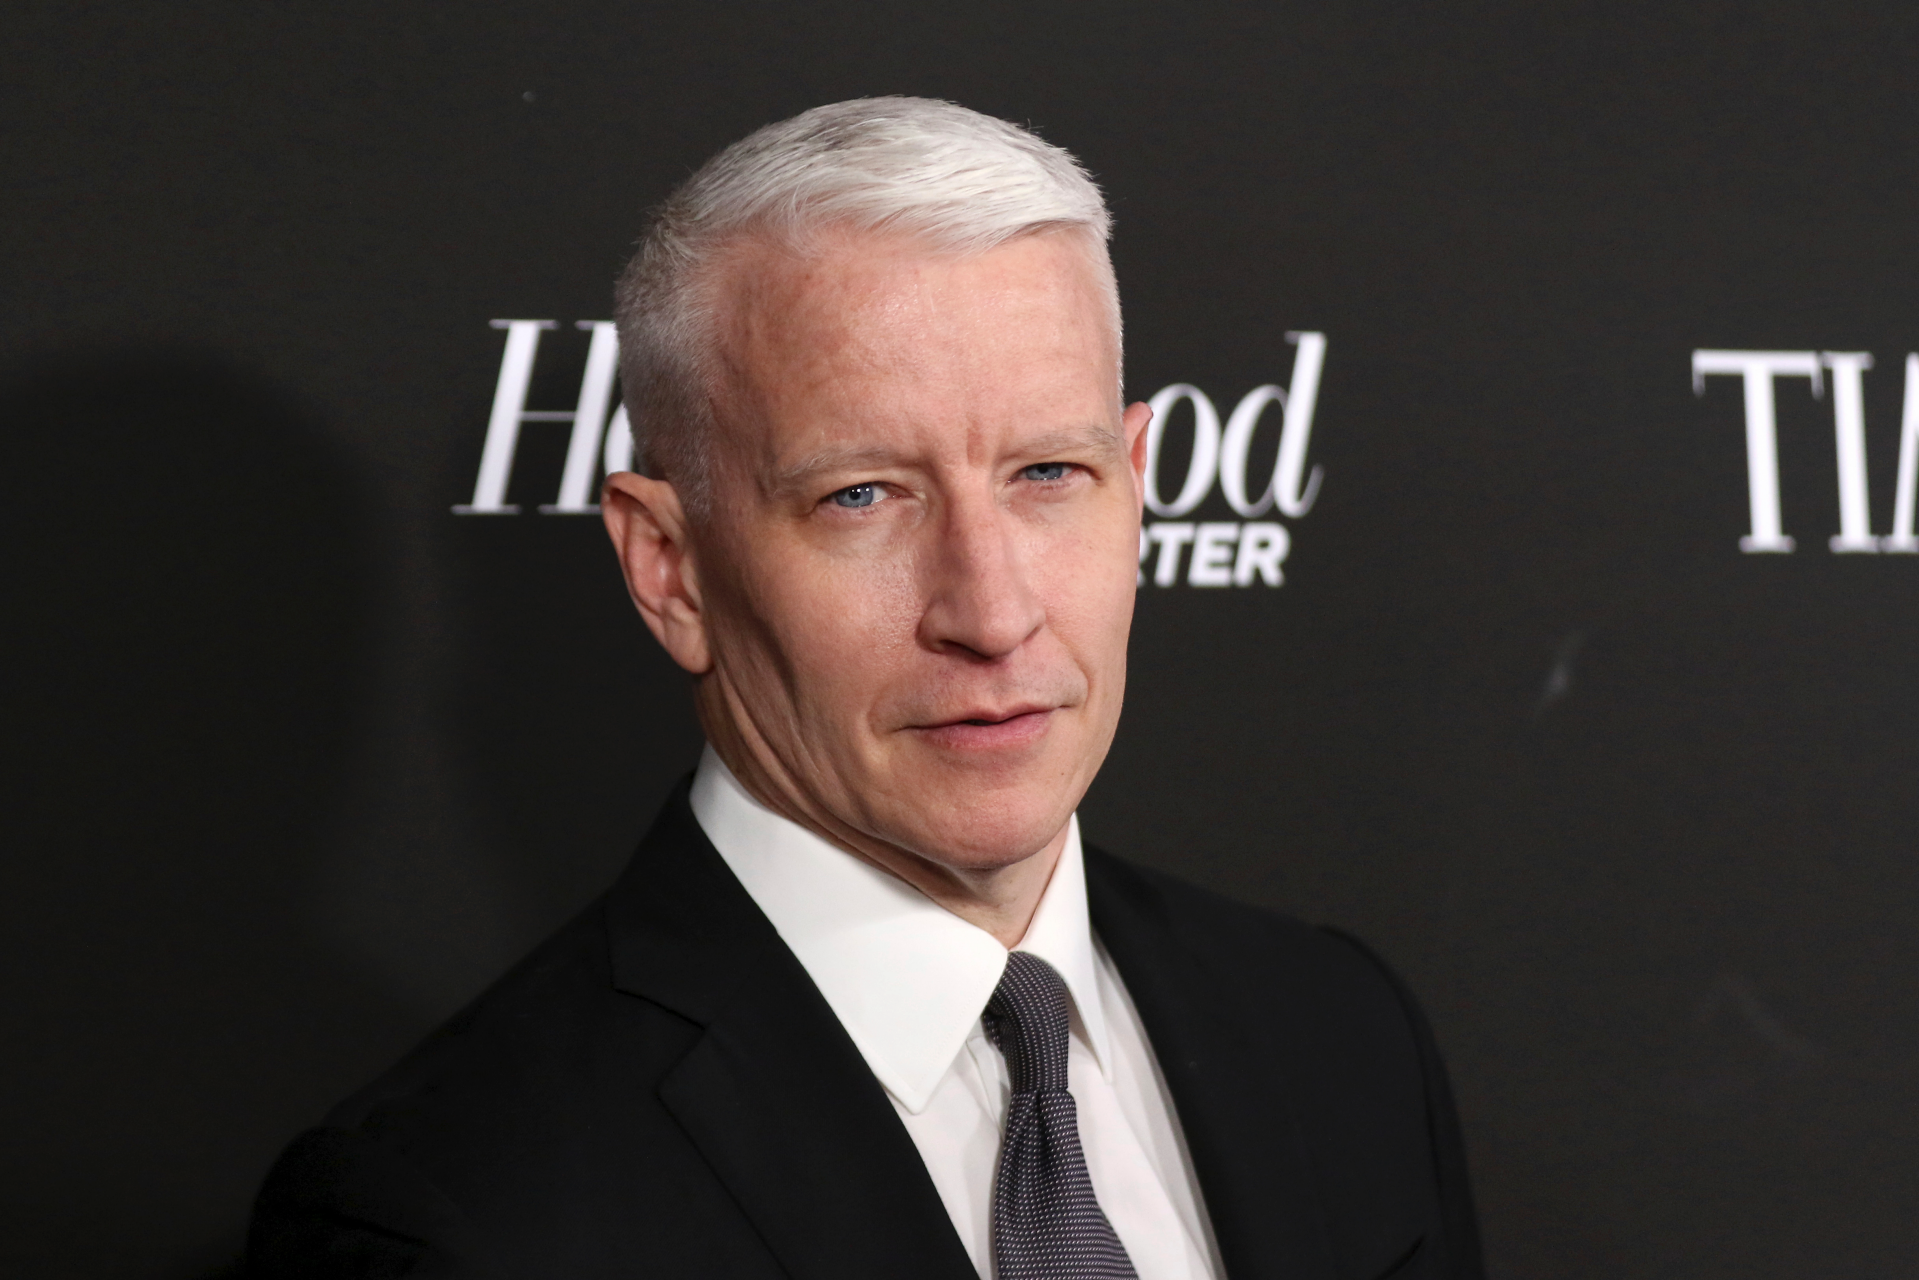 Westlake Legal Group ContentBroker_contentid-0d5af694c4b445cb90c2e5a0f1ecfe42 Anderson Cooper says 'stench' is coming from federal immigration authorities over migrant detention facilities Lukas Mikelionis fox-news/us/immigration/border-security fox-news/us/immigration fox-news/entertainment/media fox news fnc/entertainment fnc ec3c89d7-e676-53be-9597-12c8ff58edbc article